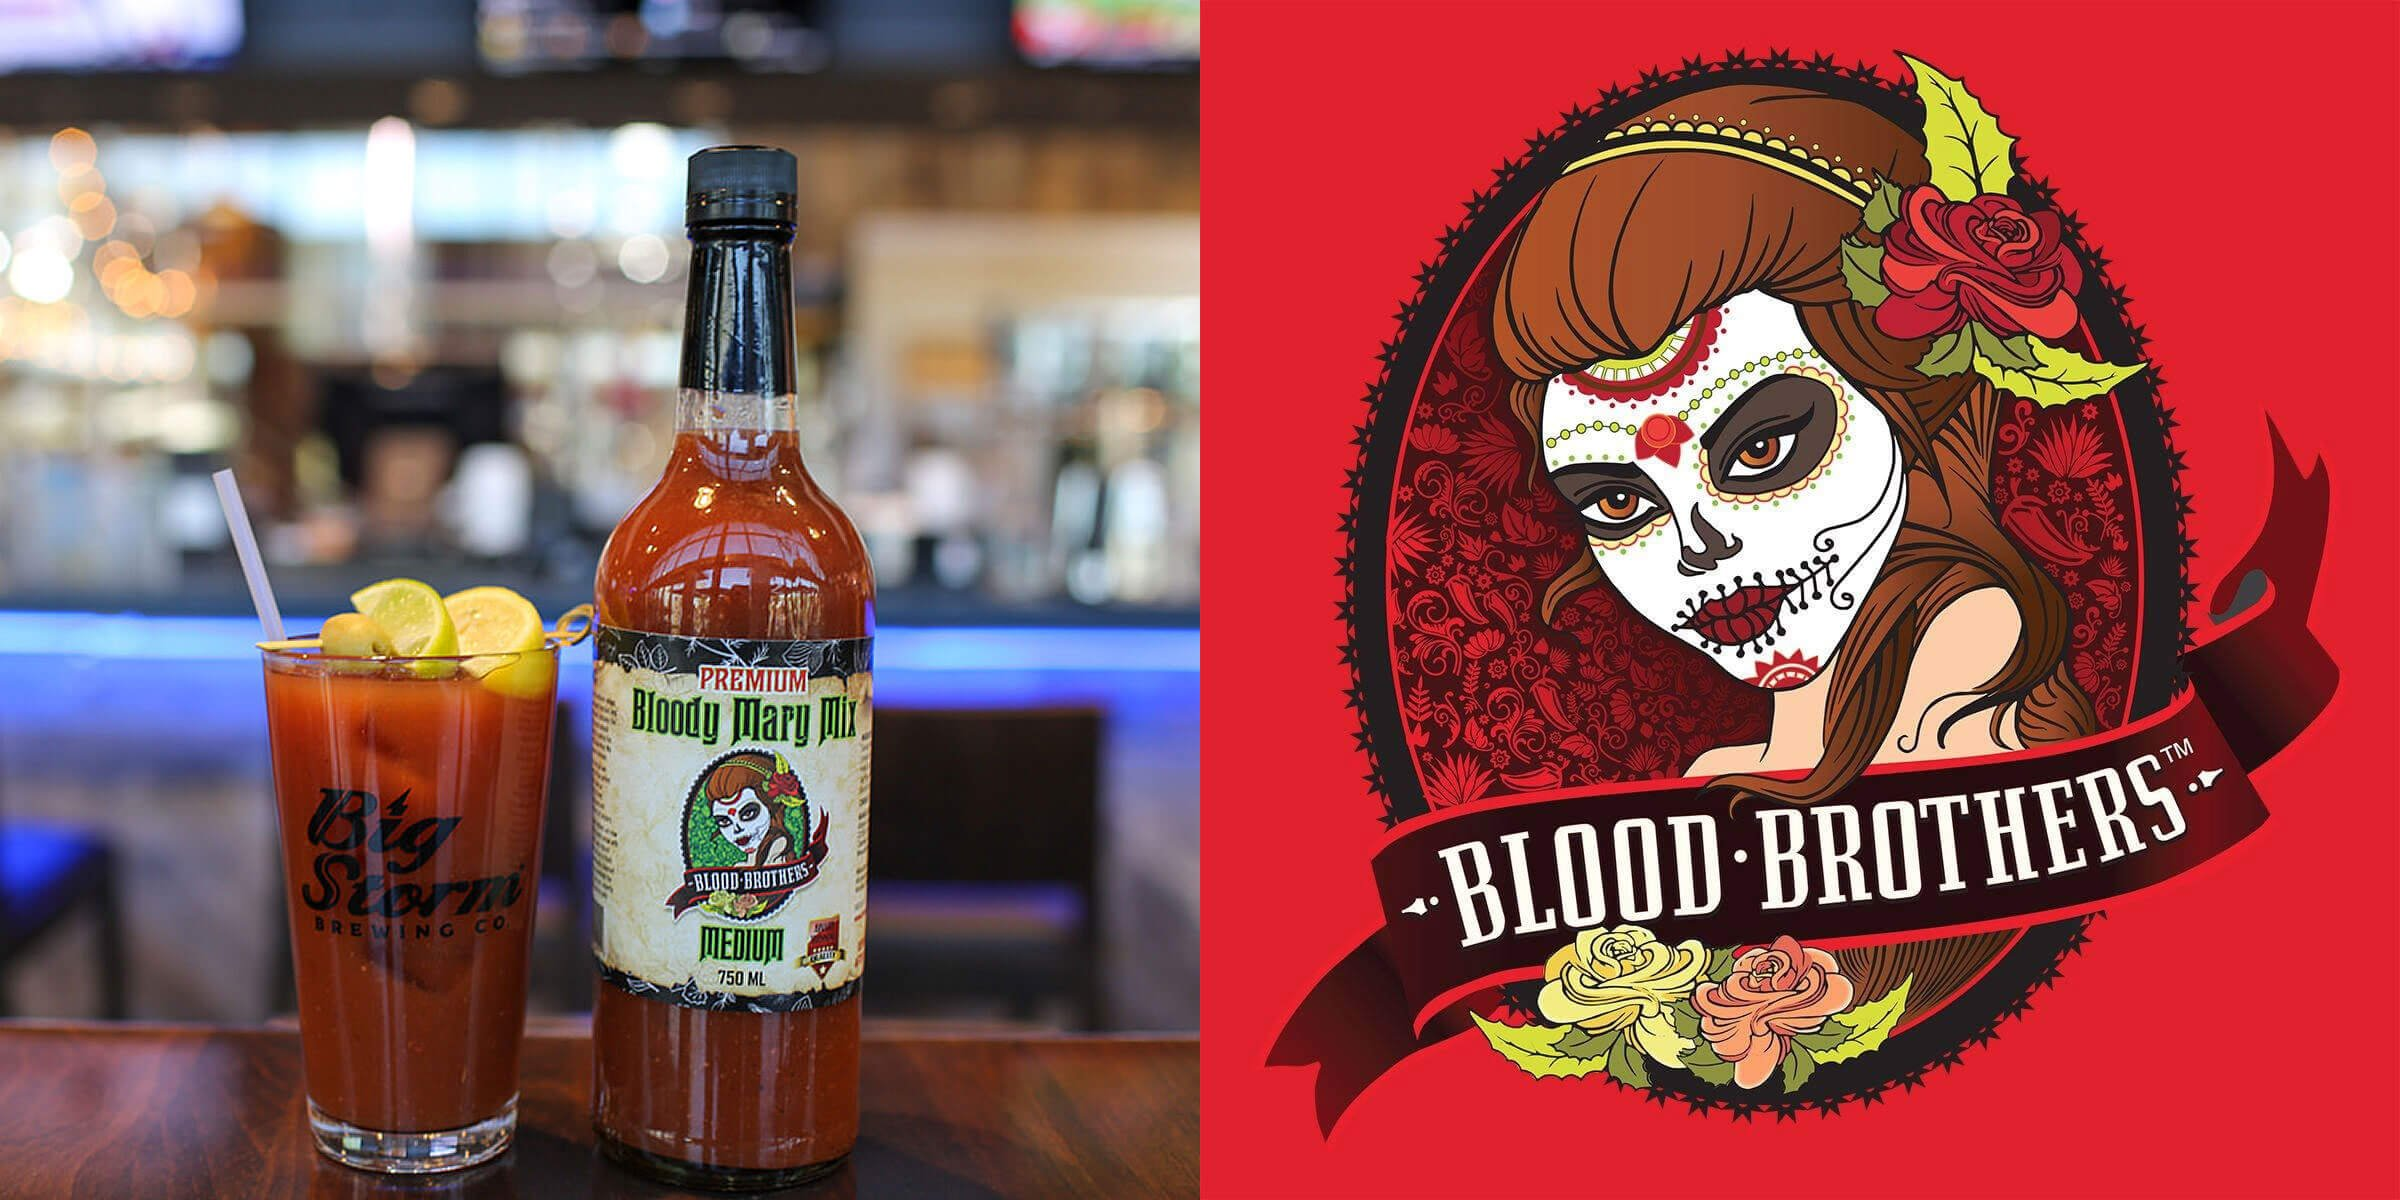 Clearwater, Florida-headquartered Big Storm Brewing Company has acquired a minority stake in Blood Brothers Bloody Mary Mix, also based in Clearwater.